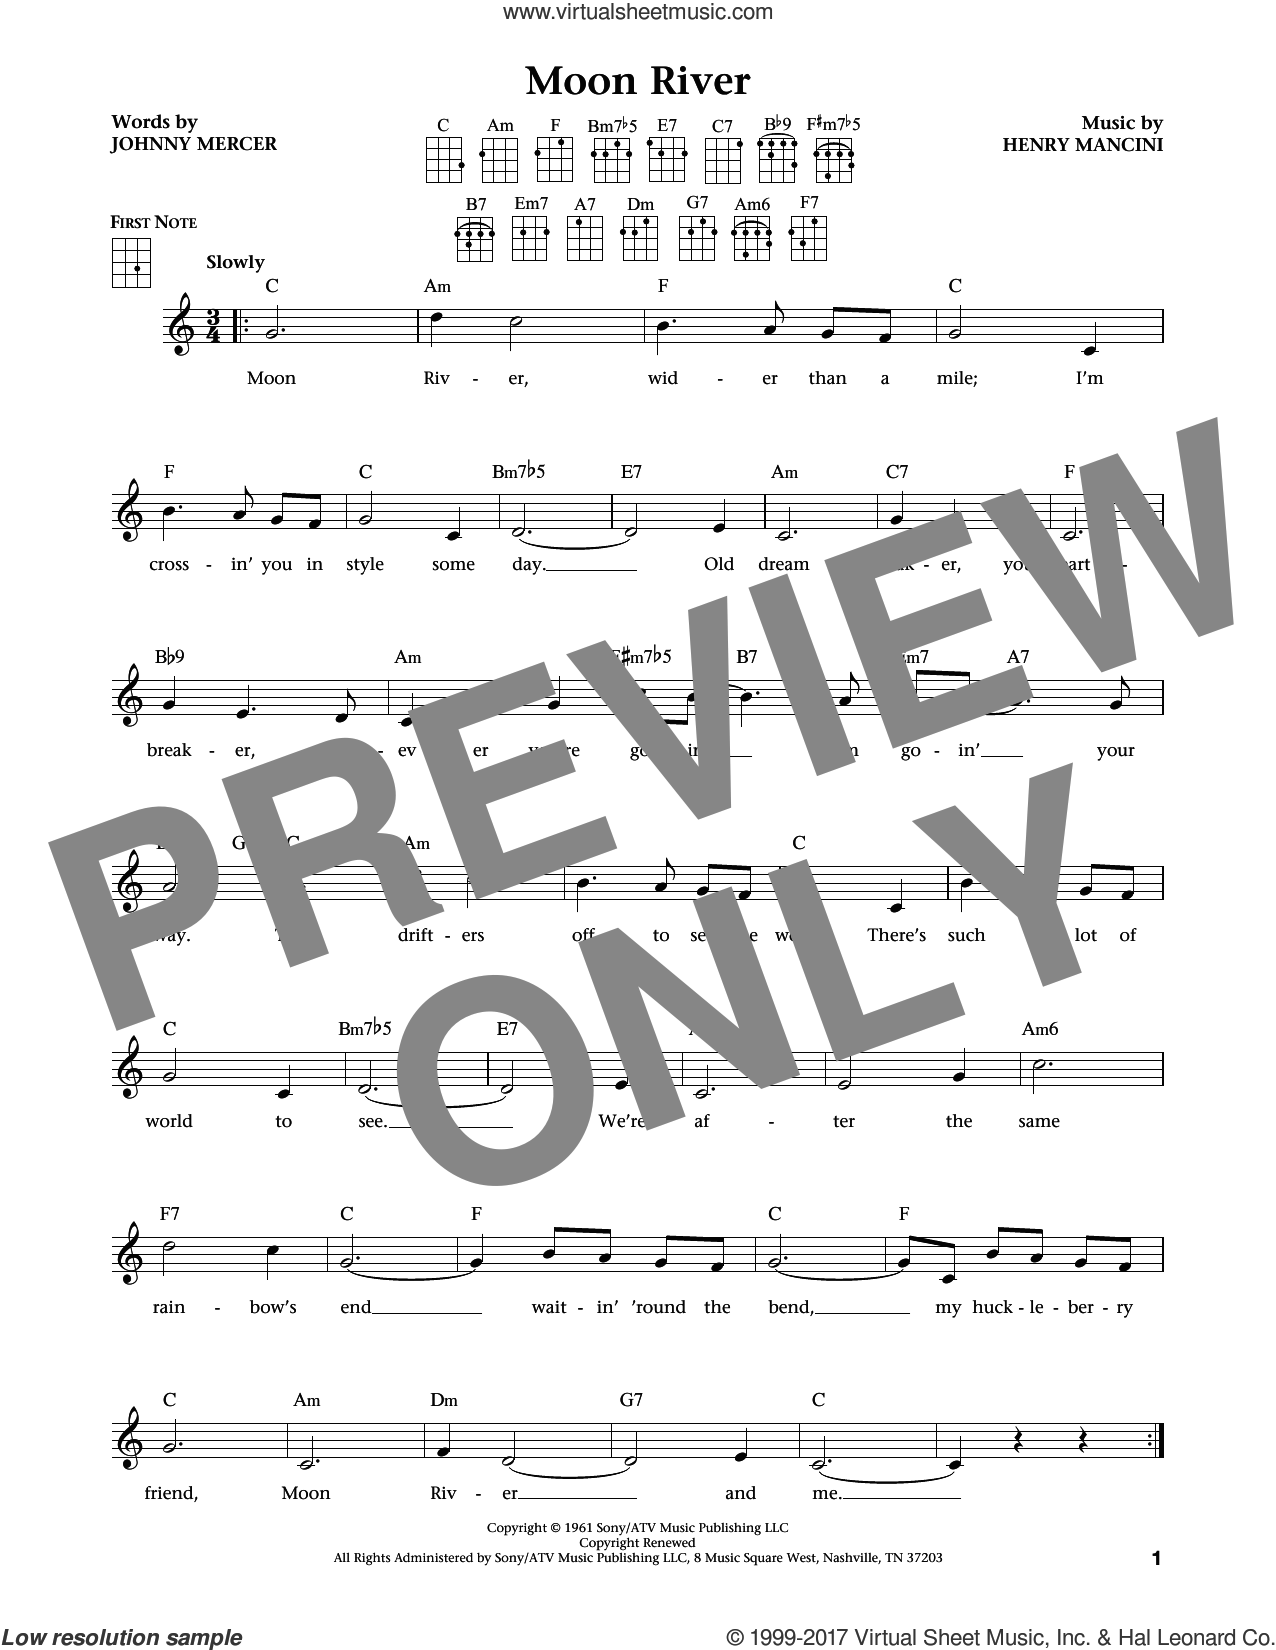 Moon River sheet music for ukulele by Johnny Mercer, Jim Beloff, Liz Beloff, Andy Williams and Henry Mancini, intermediate skill level